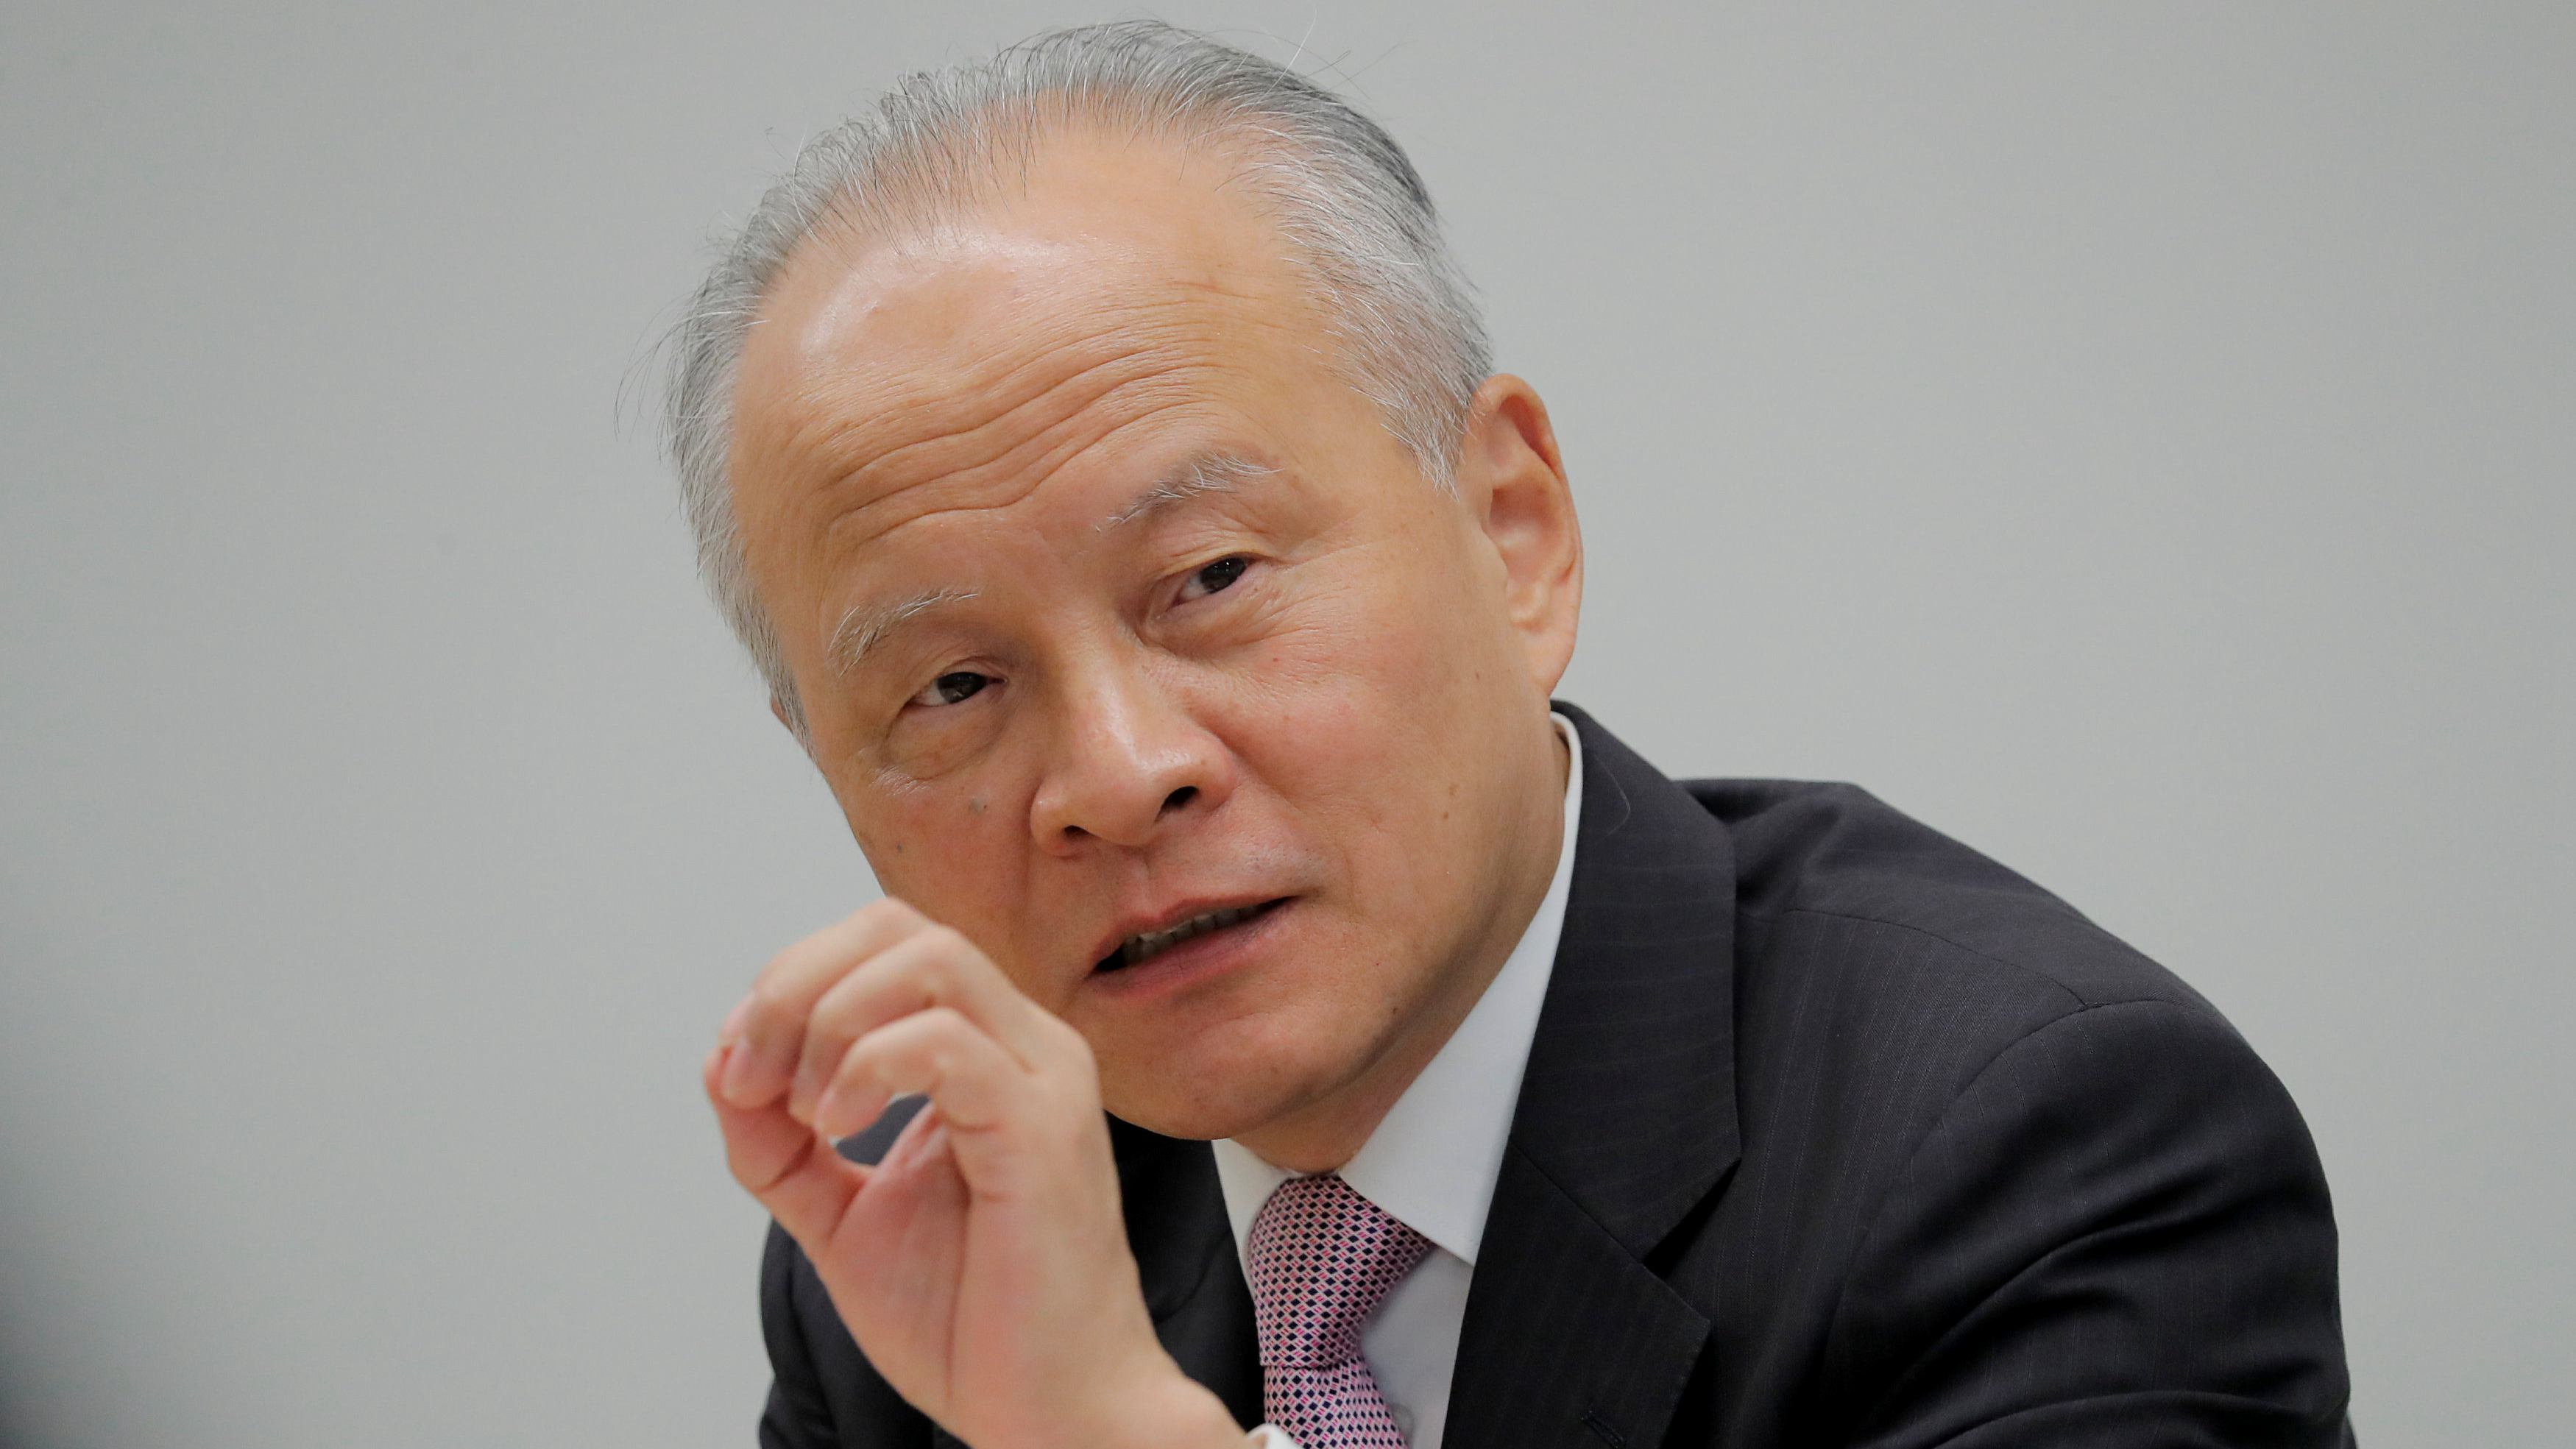 Chinese Ambassador Cui Tiankai calls for people to believe in science and facts